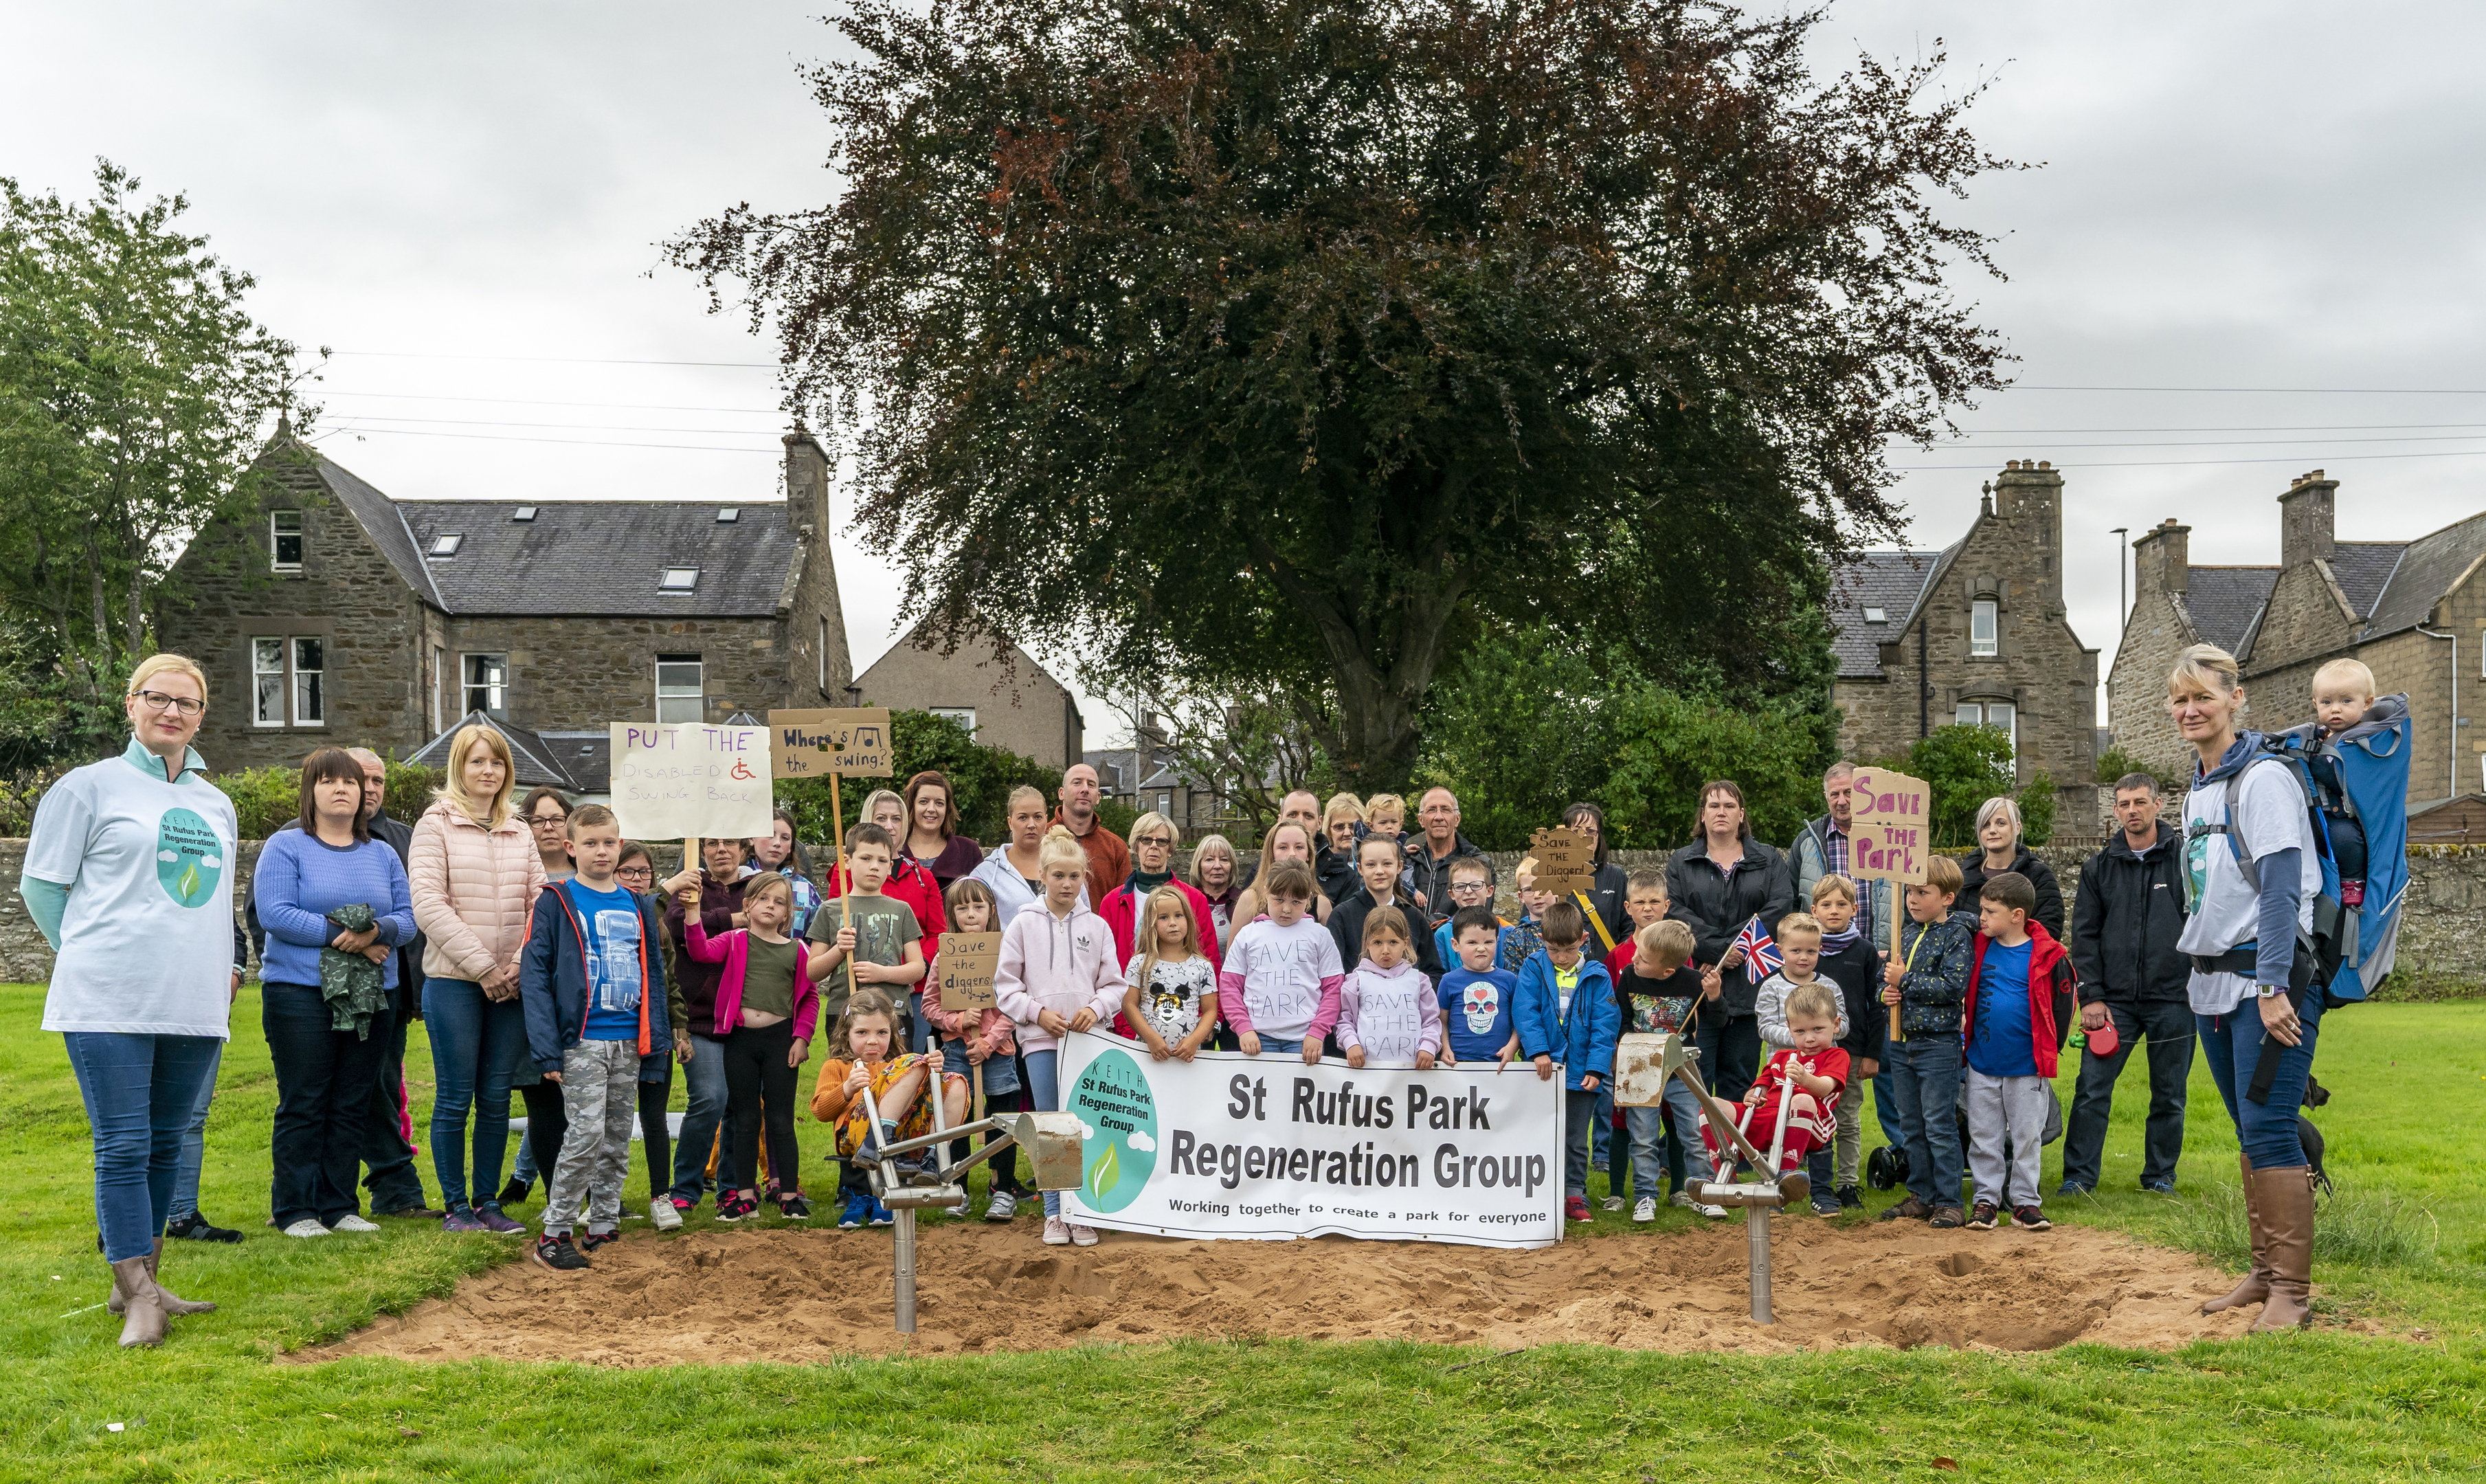 This is an image of the demonstration by the St Rufus Park Regeneration Group from Keith.